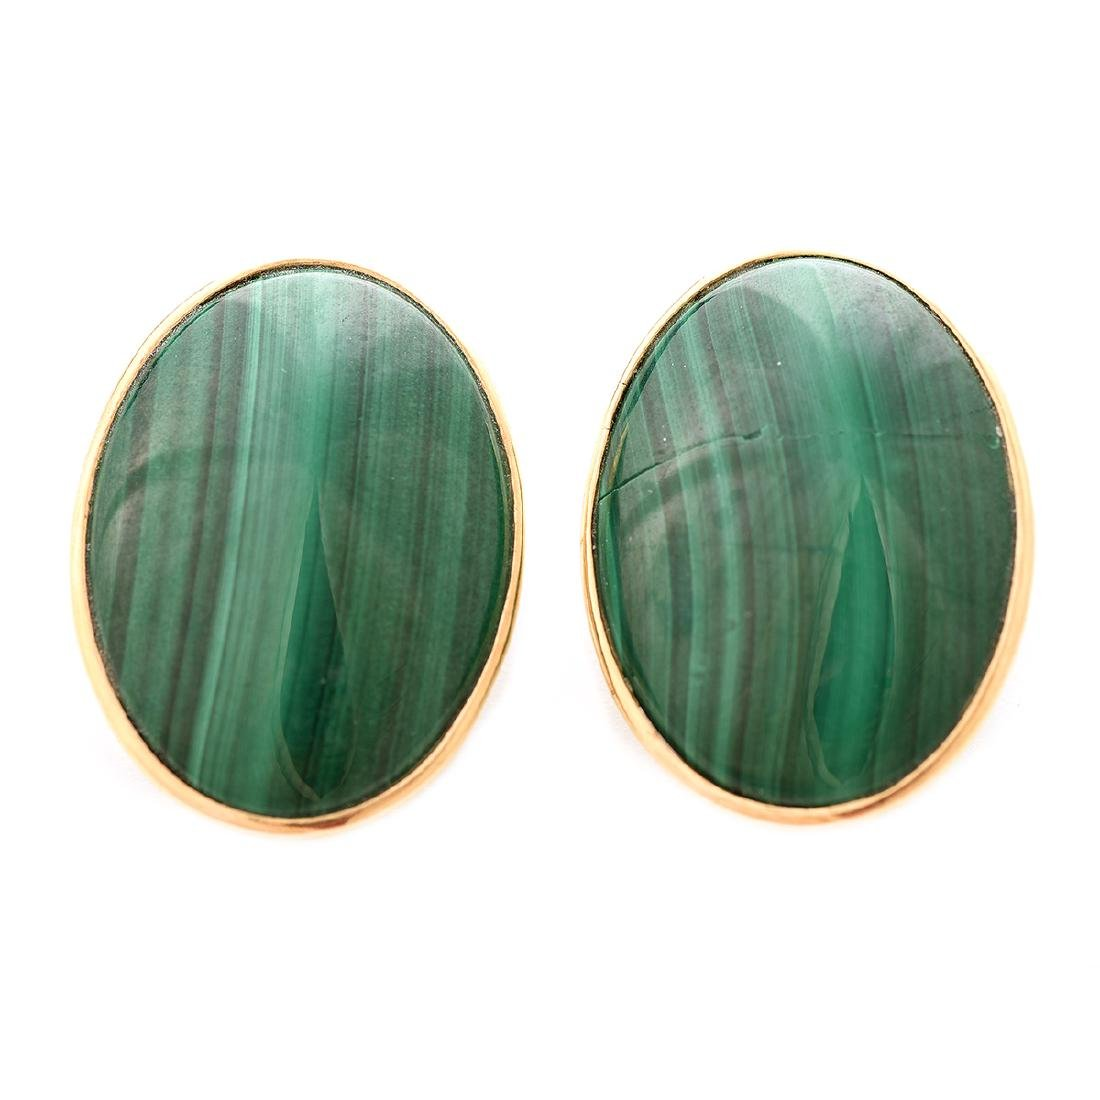 Pair of Malachite, 14k Yellow Gold Earrings.